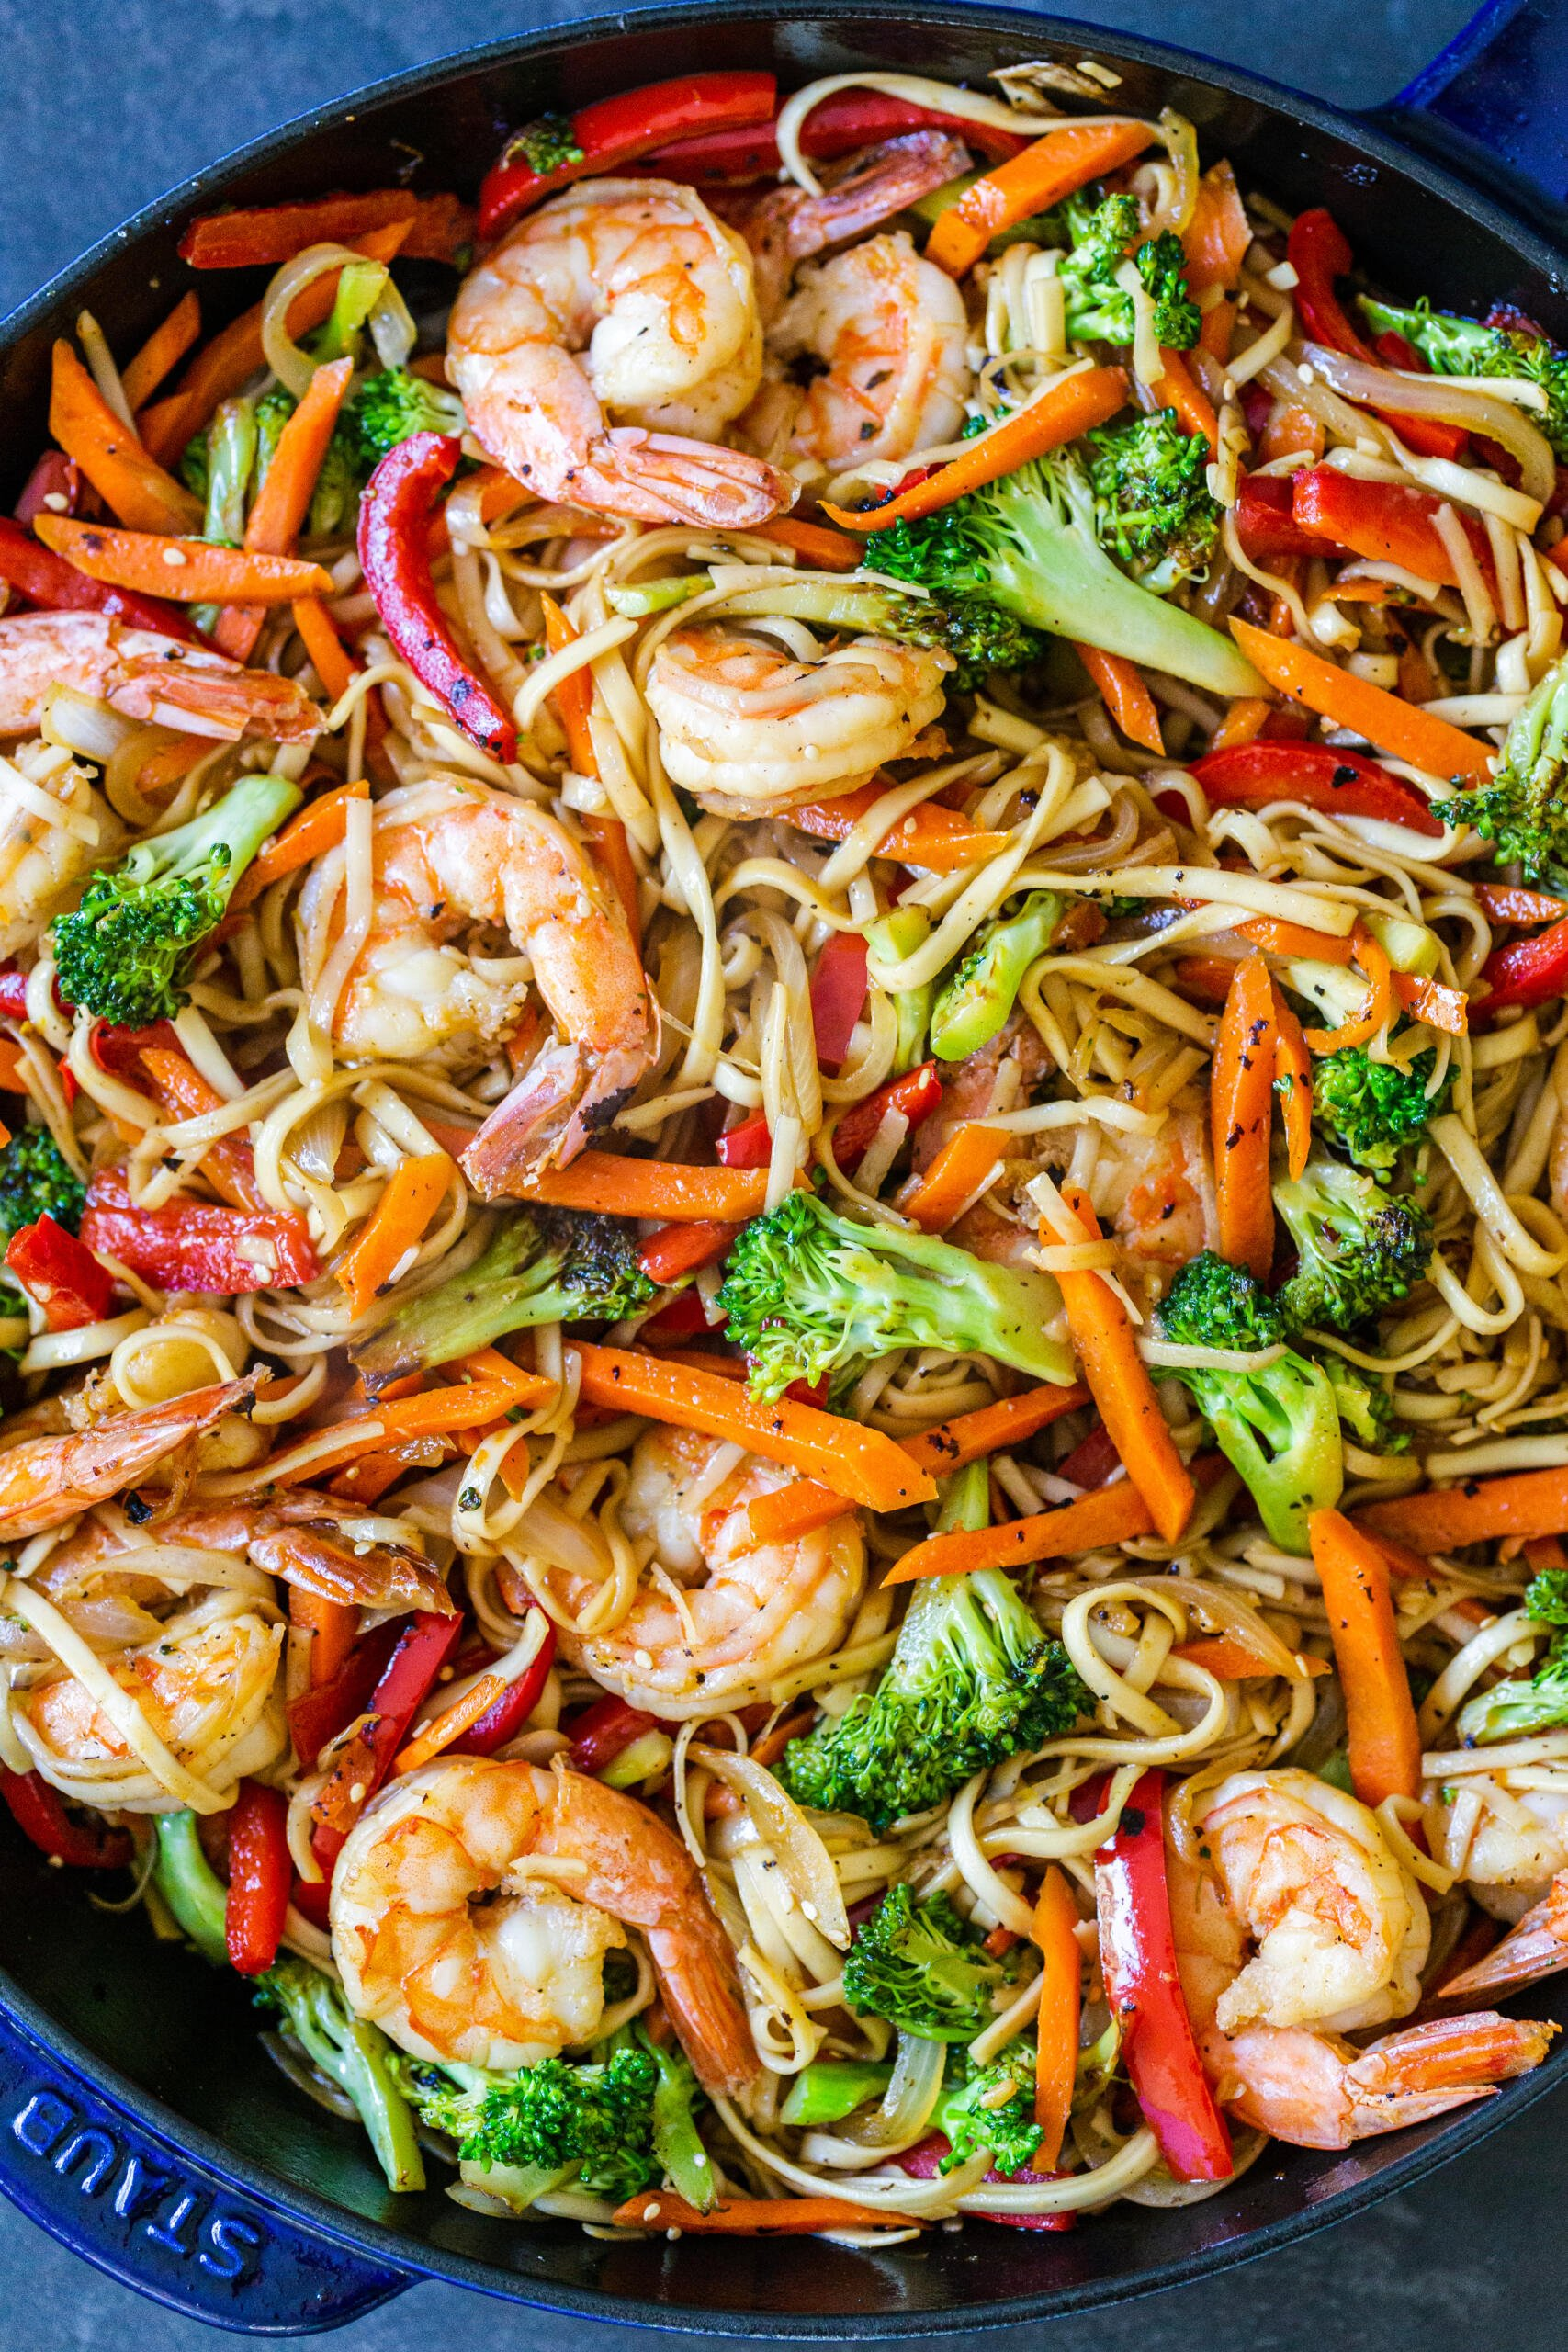 Shrimp Lo mein in a pan